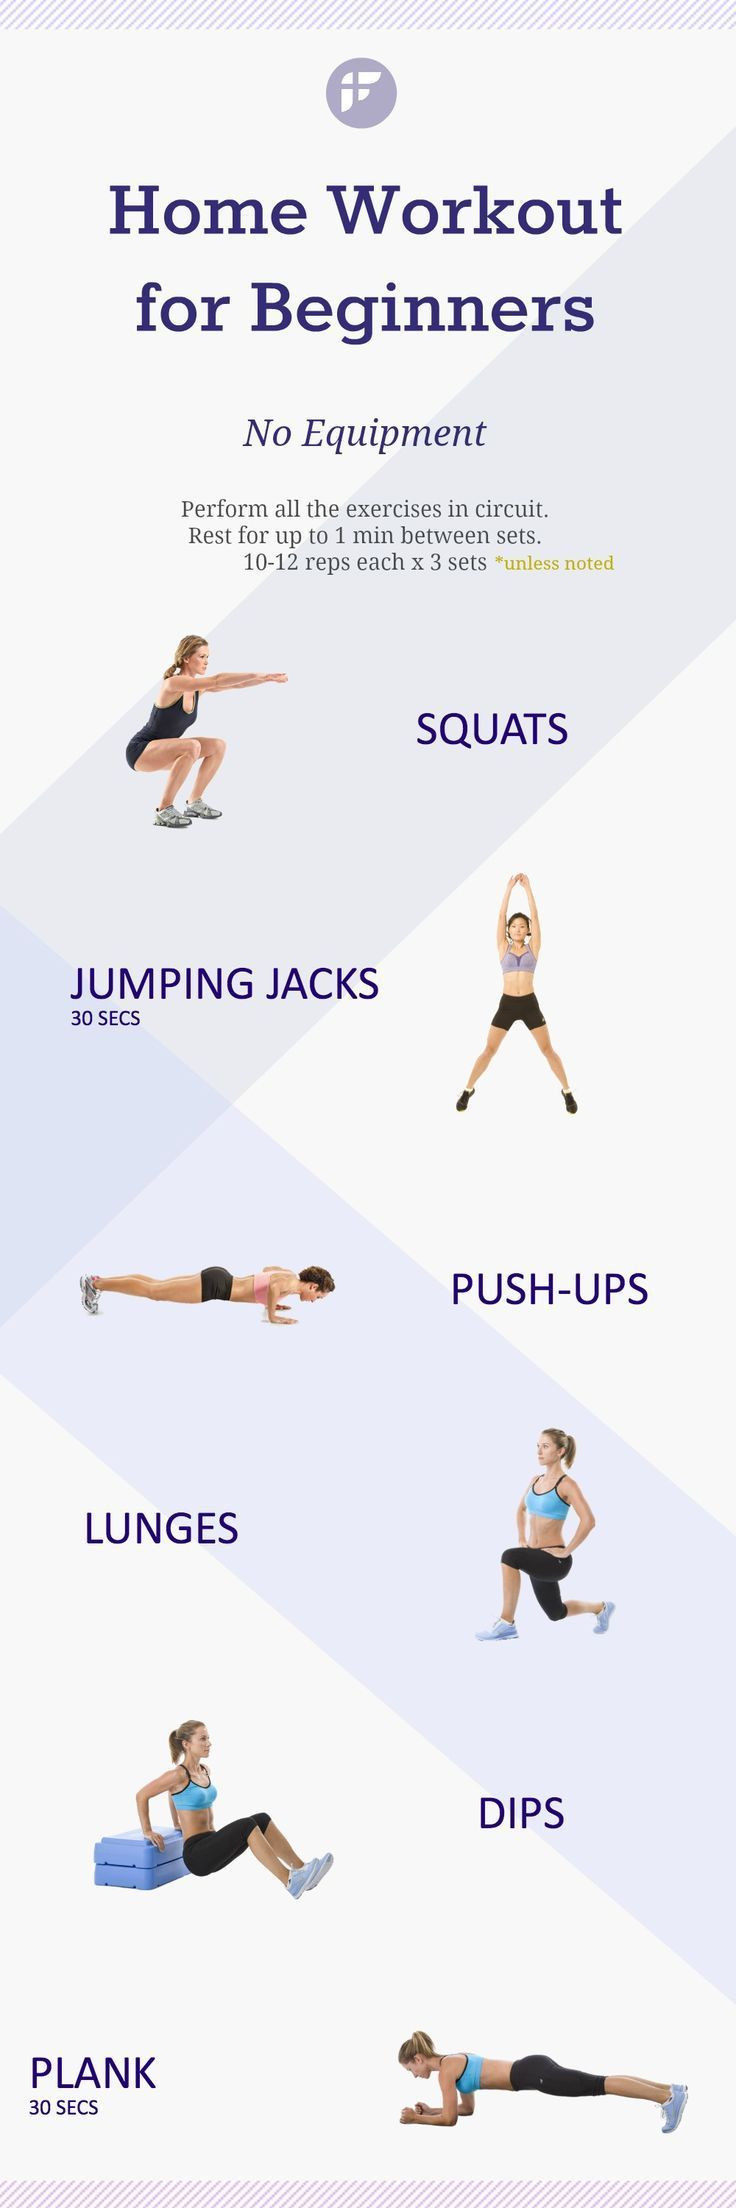 Weight Loss Exercises At Home For Women  Best 700 Workout Plan images on Pinterest